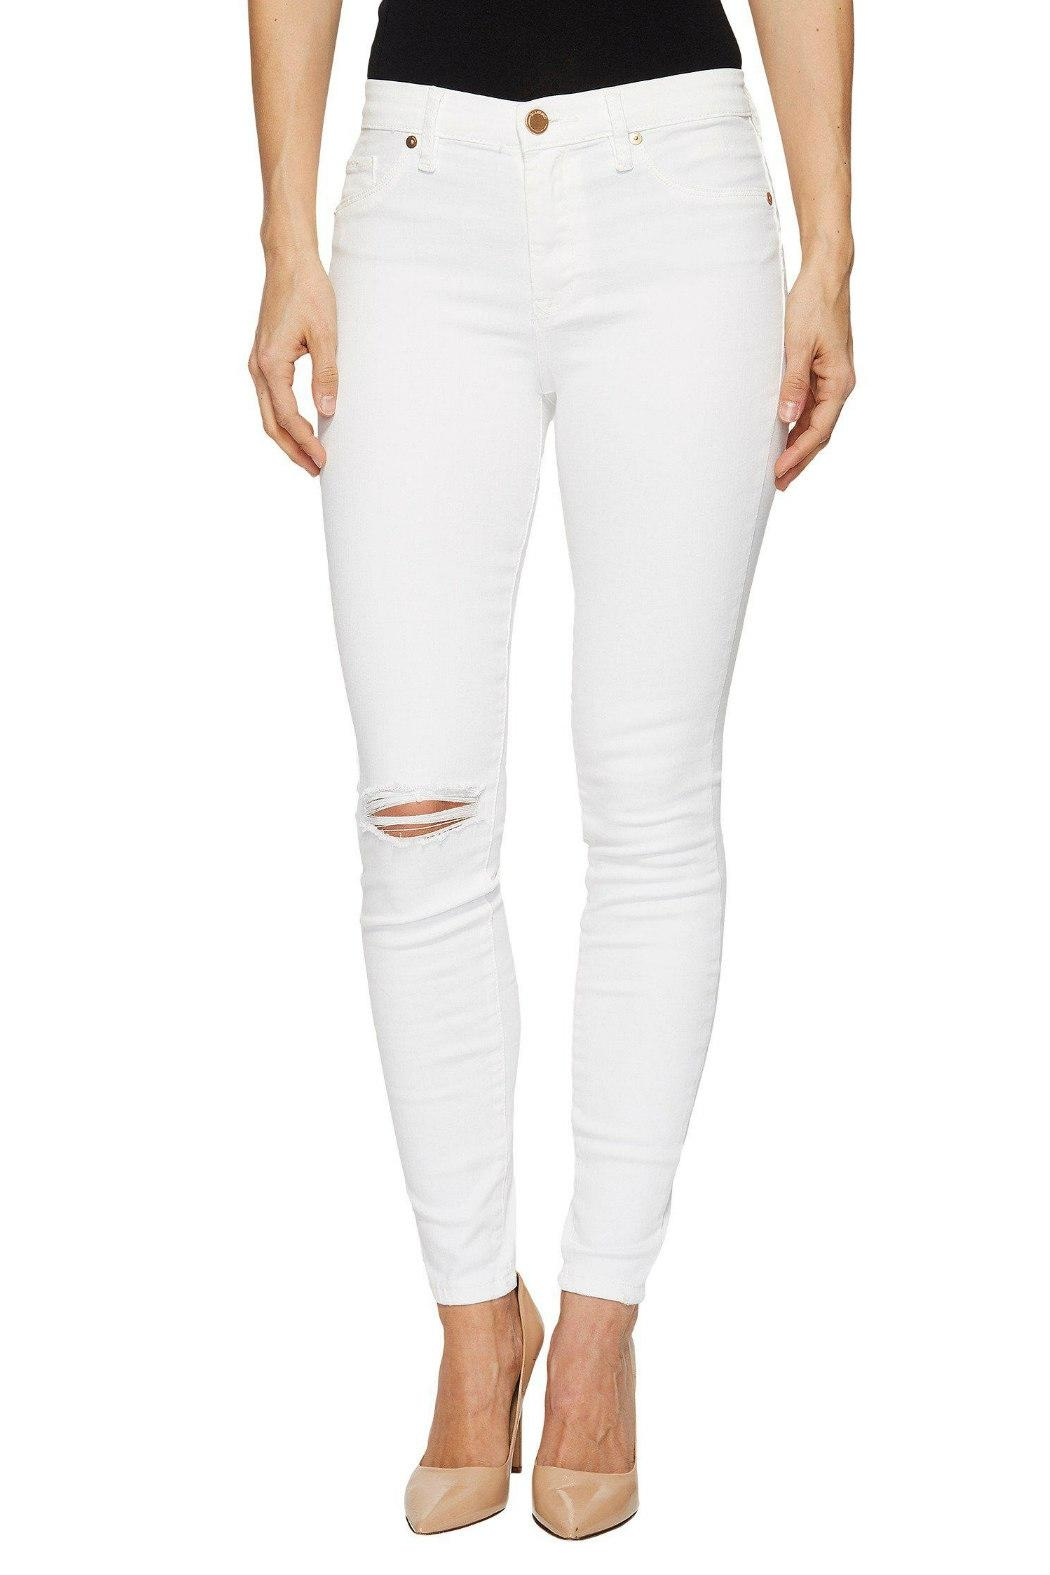 Blank NYC Mid-Rise Skinny Jean - Front Full Image